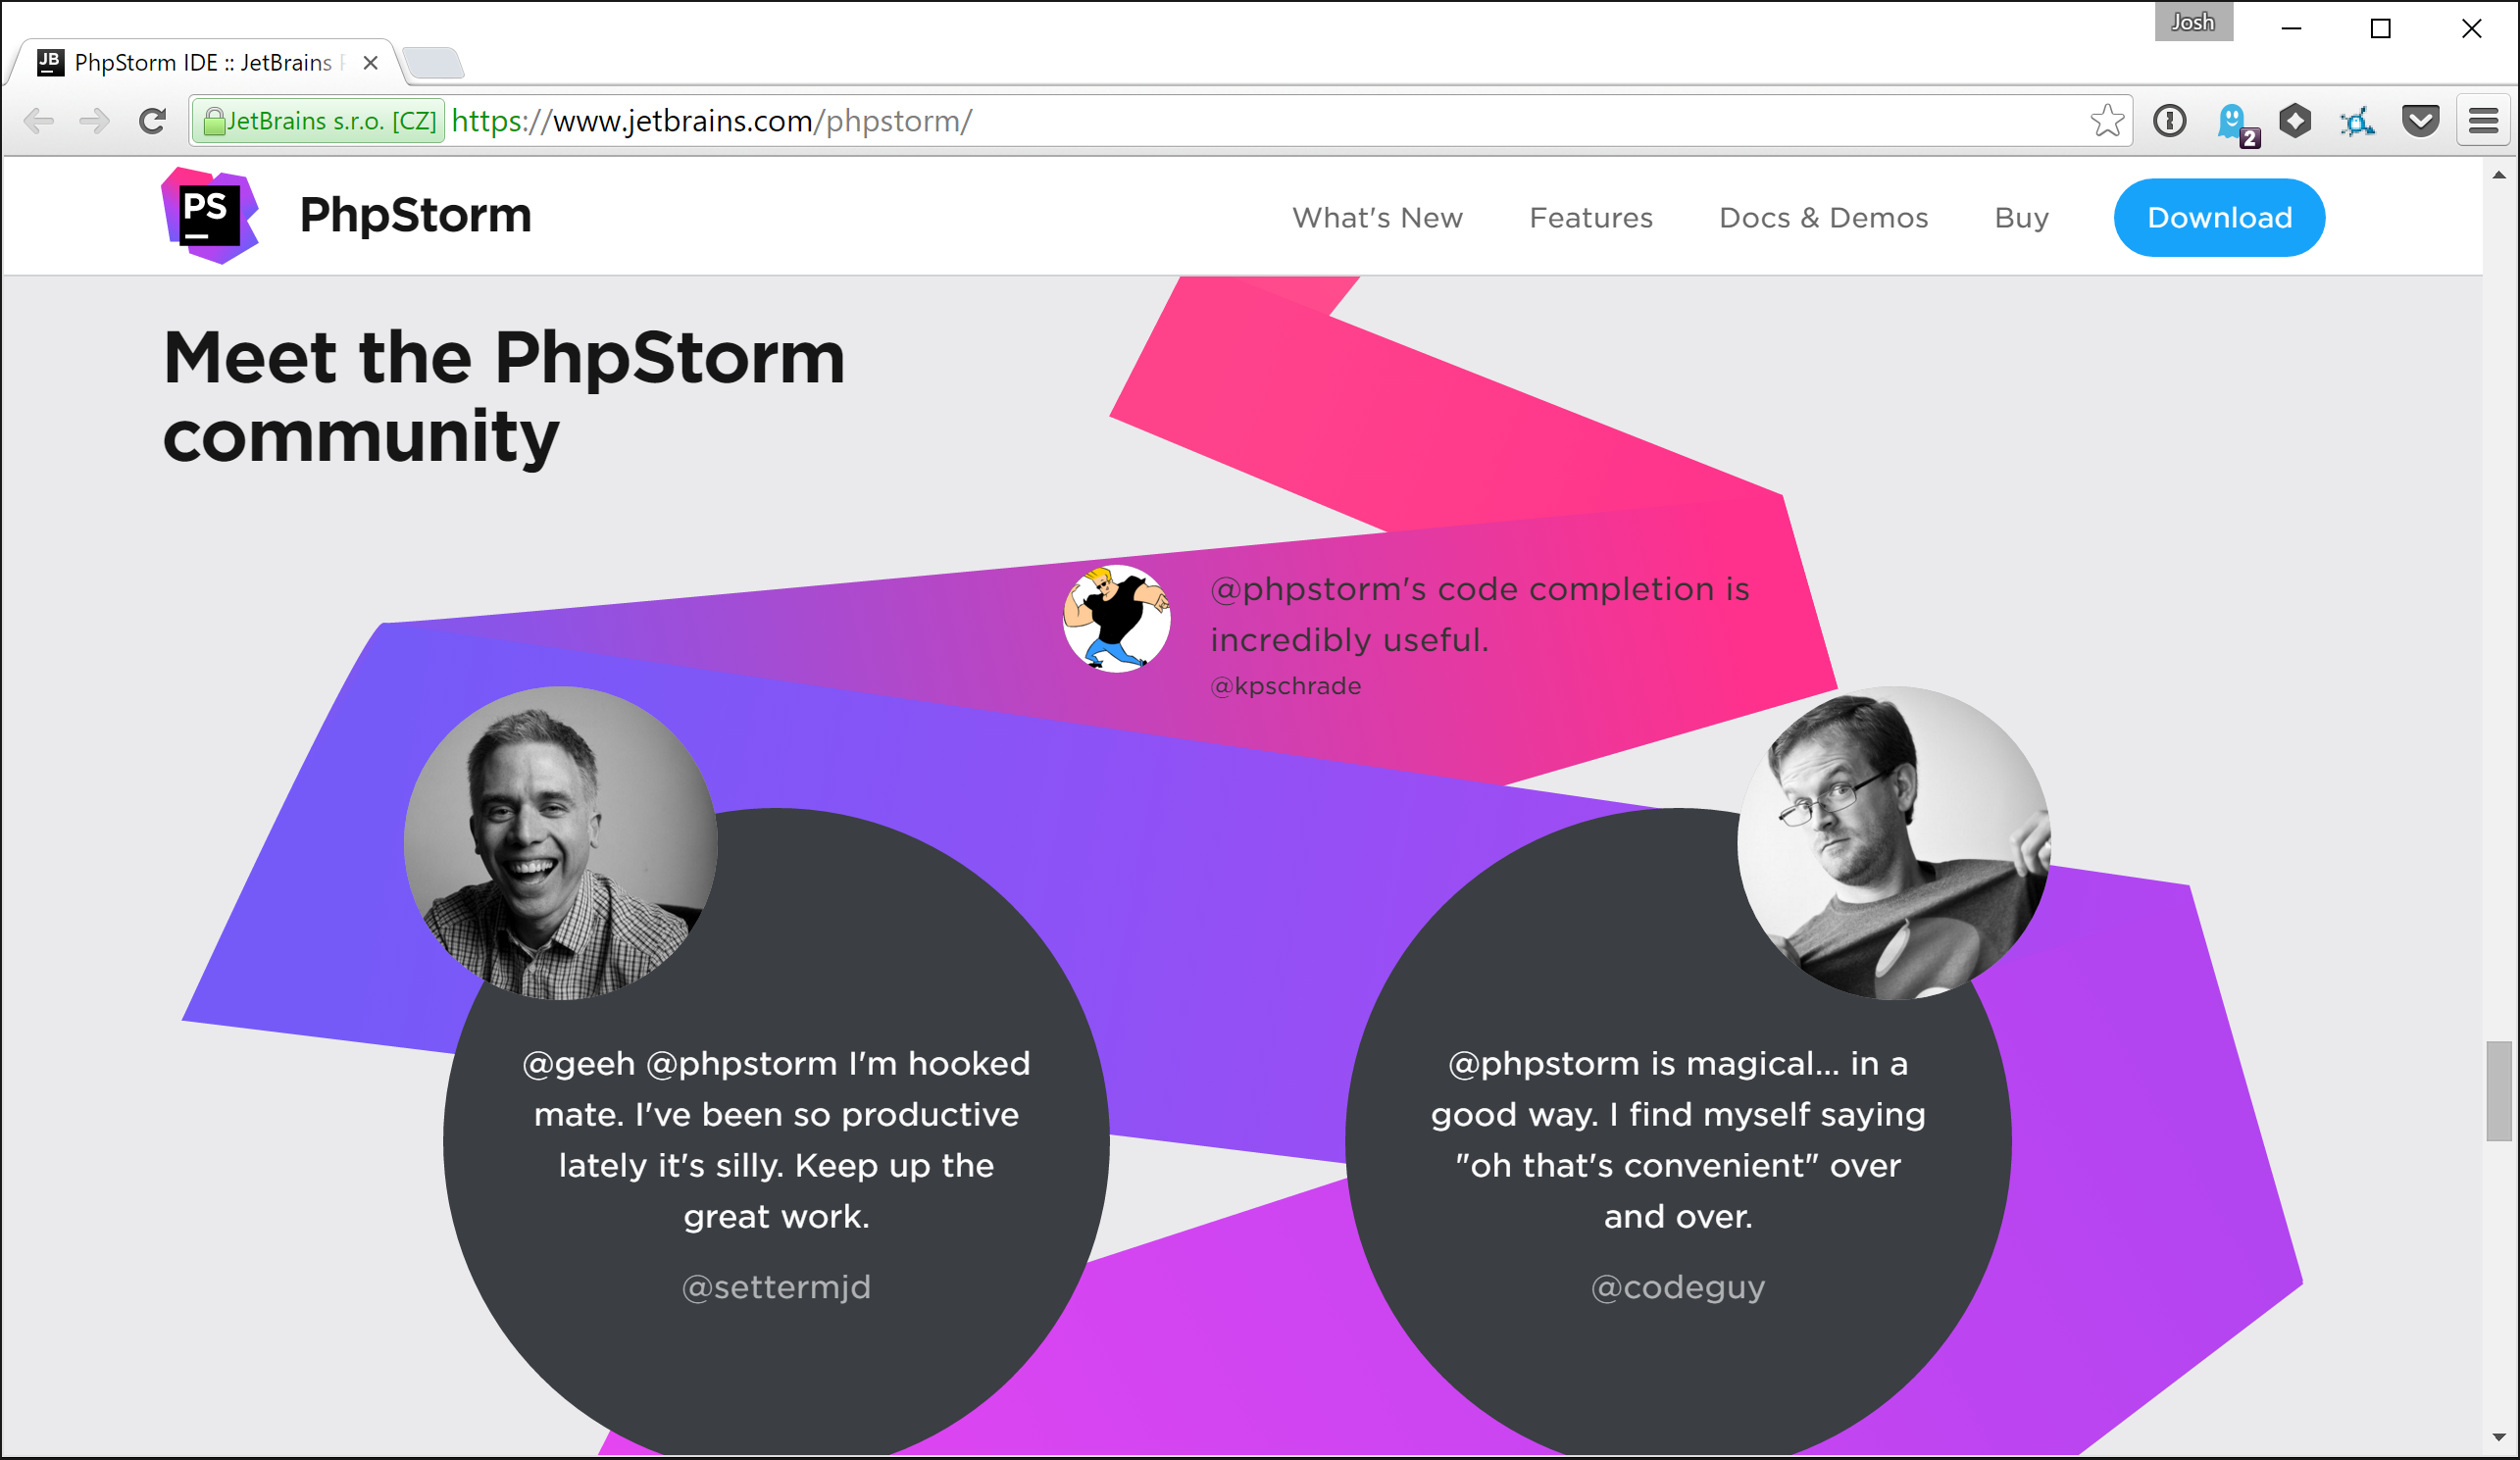 PHPStorm website with @codeguy testimonial